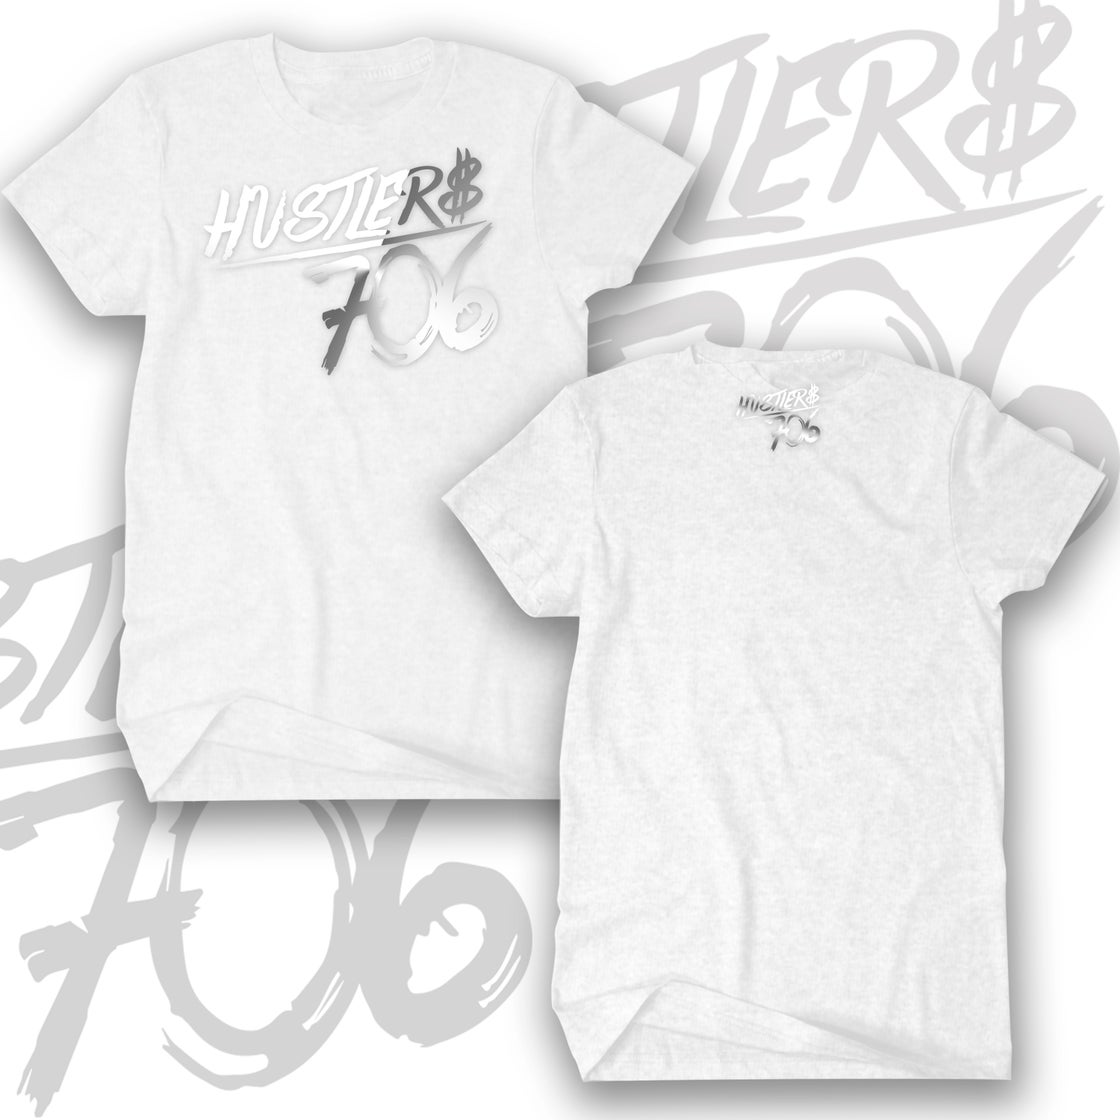 Image of HUSTLER$ 706 (Blk/Wht, Red/Wht, Blk/Silver, Heather/Wht, Wht/Silver, Navy/White (not pictured))